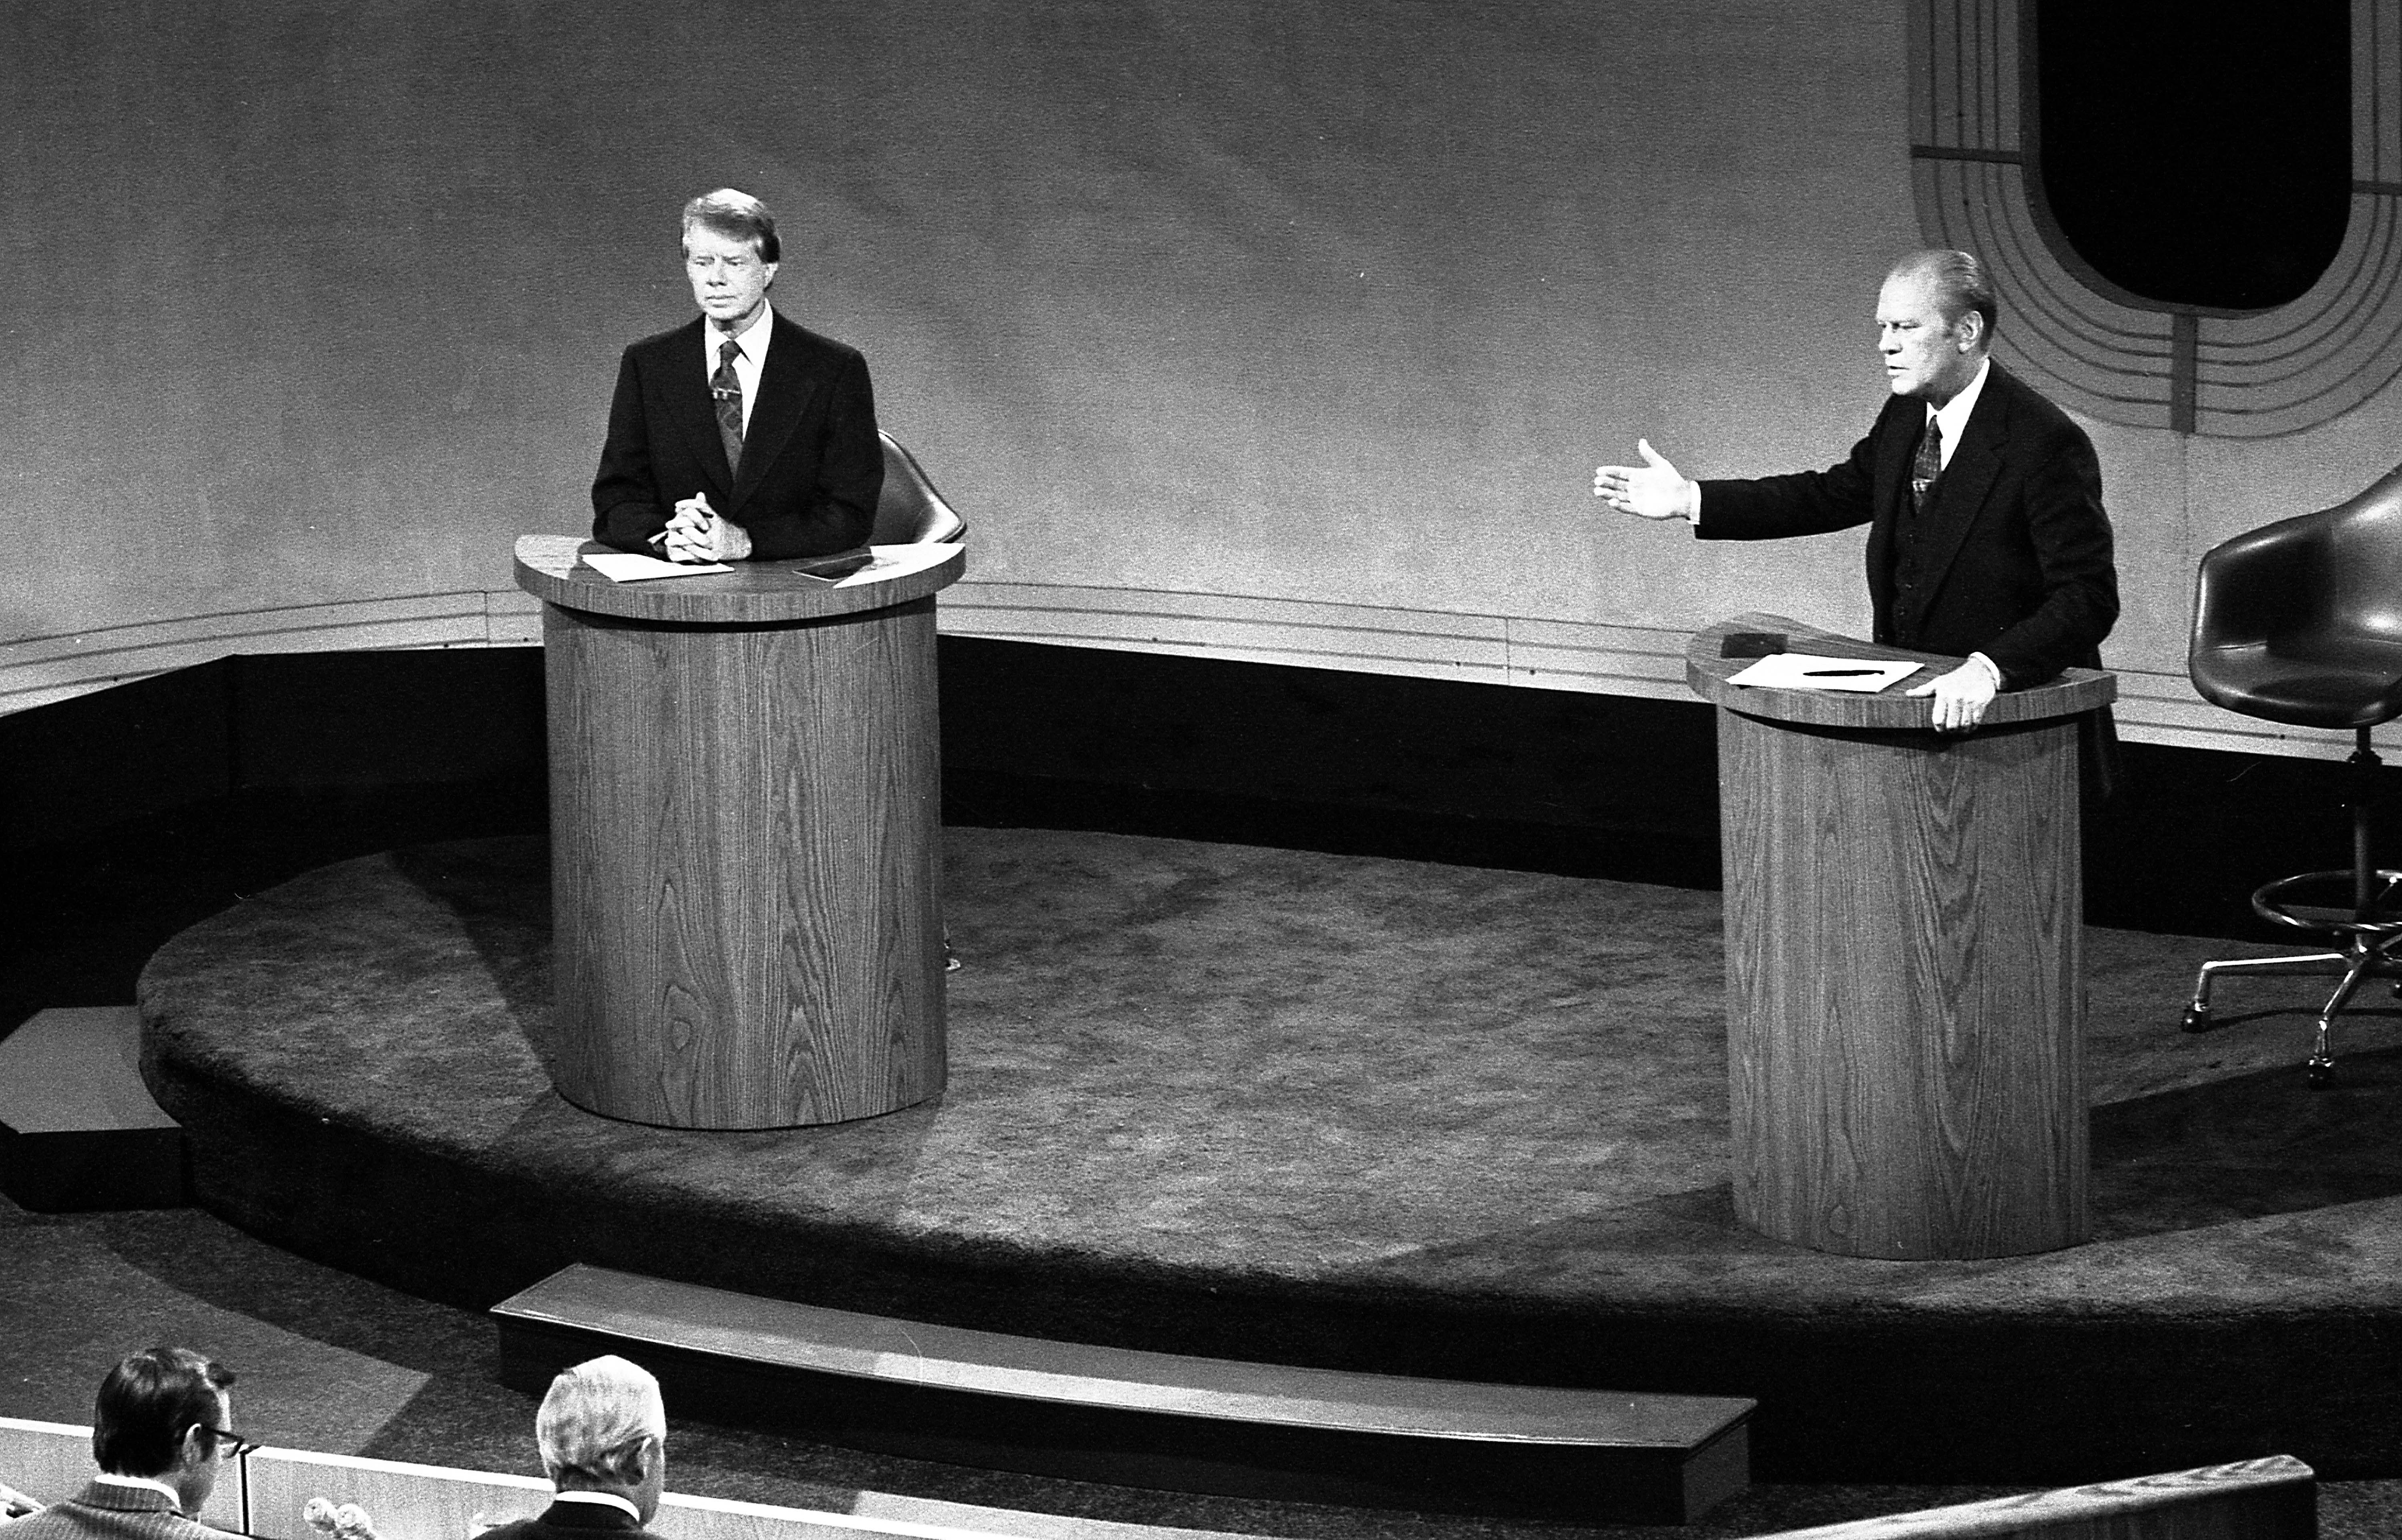 Jimmy Carter And President Gerald Ford Debating At The Walnut